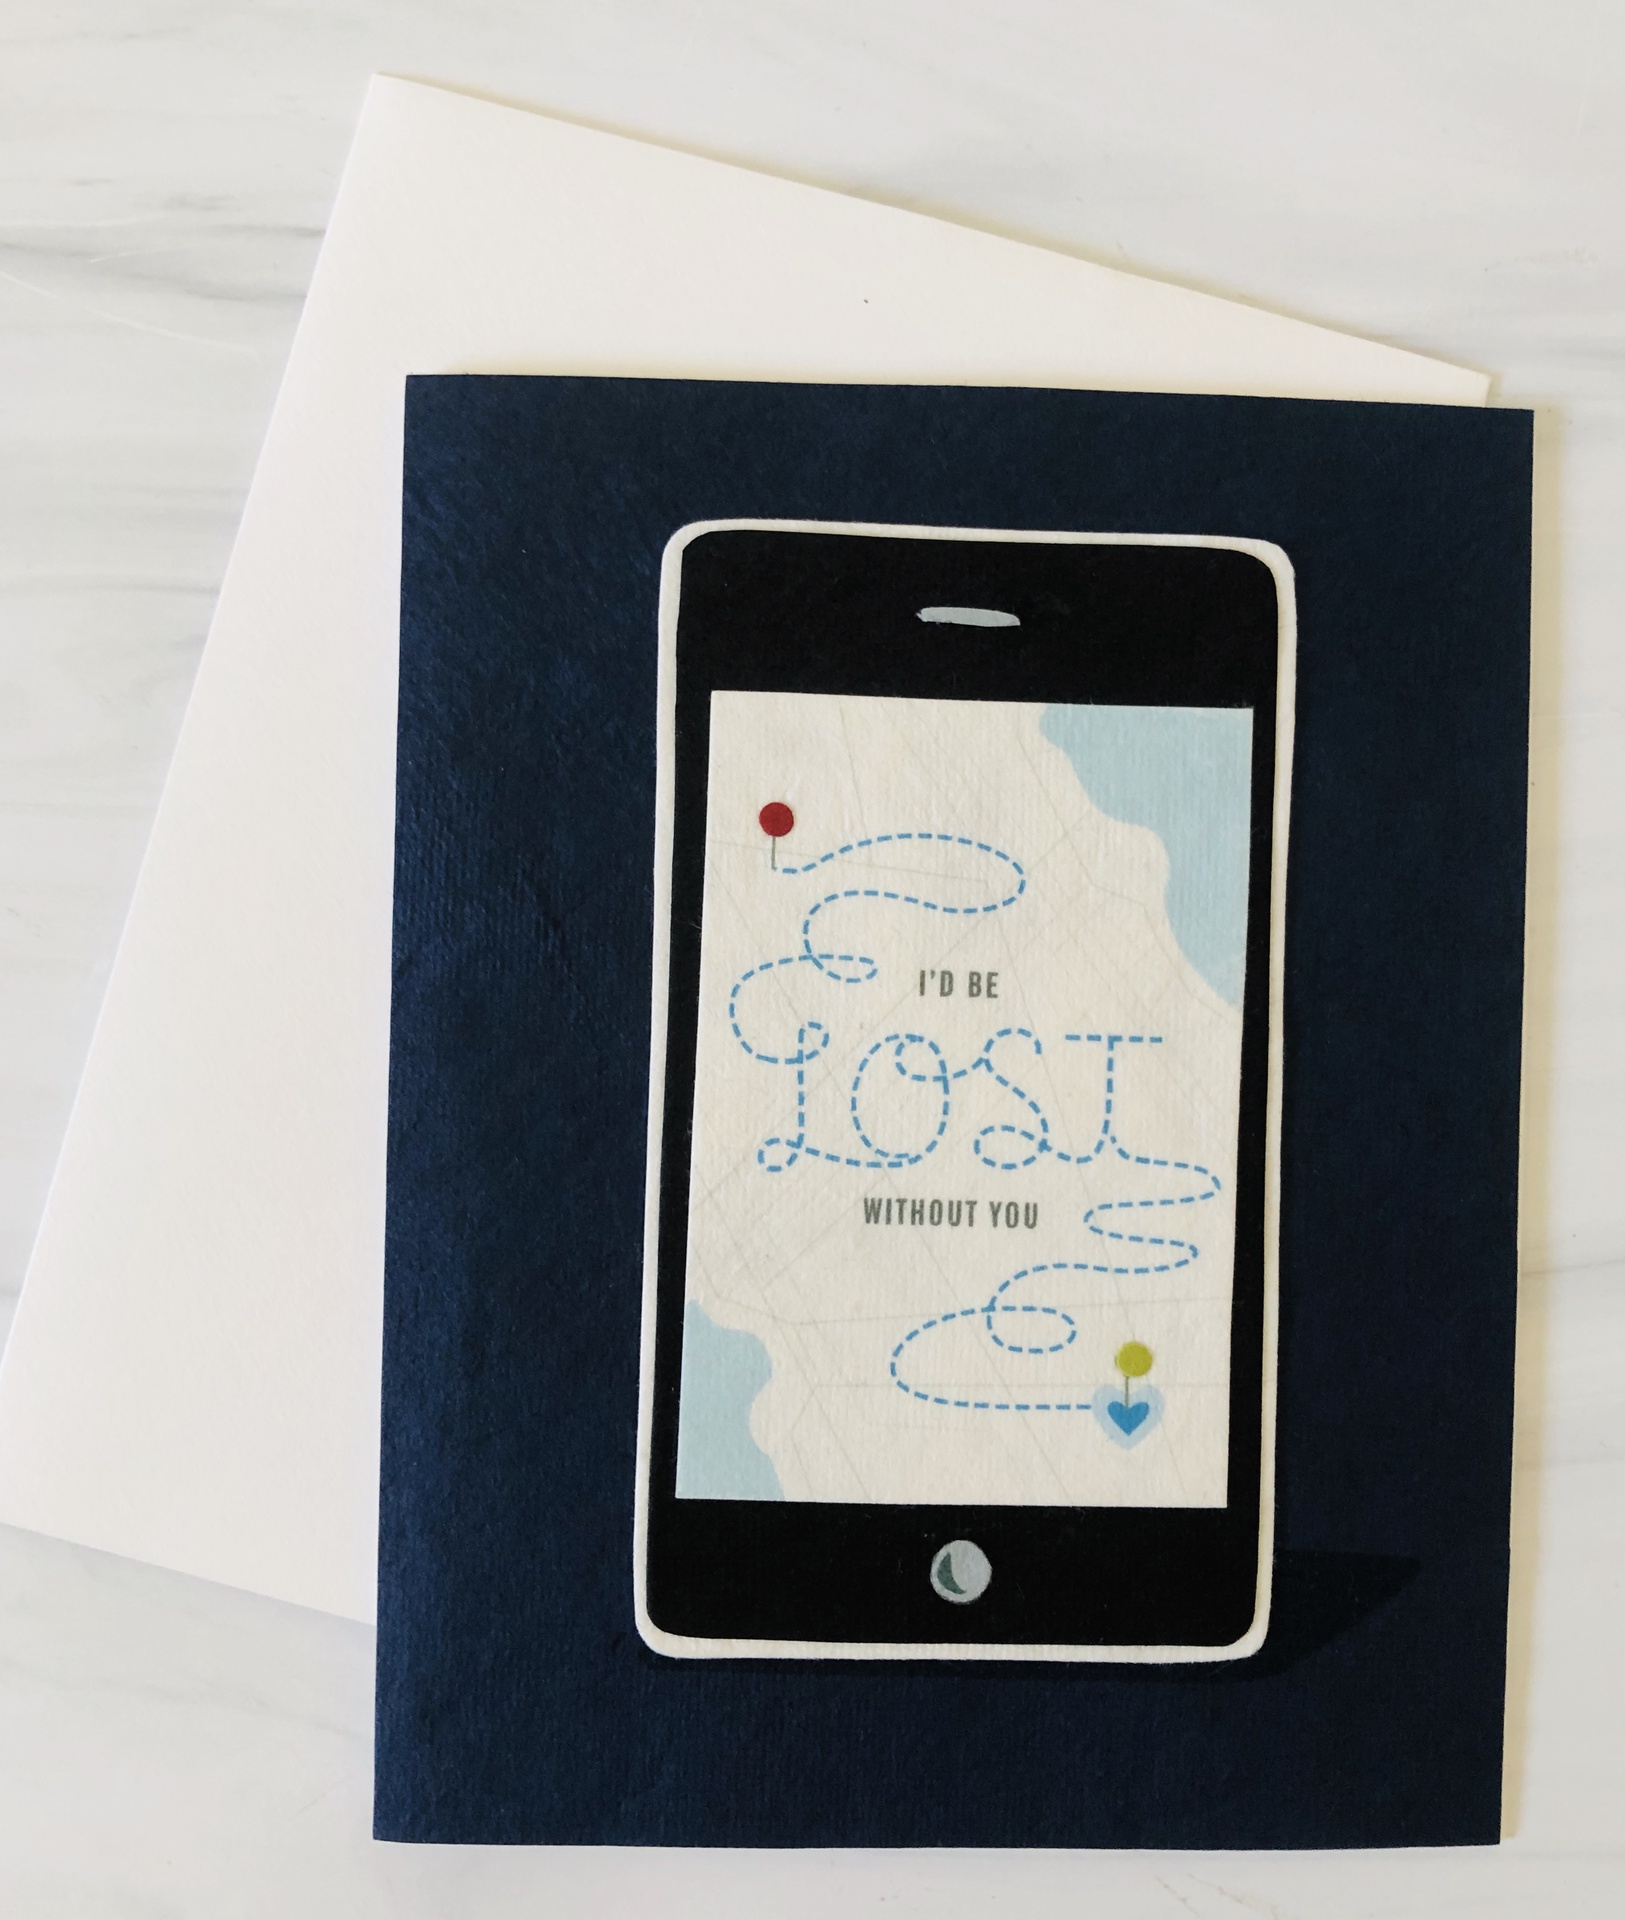 Map App Lost, Blank Greeting Card